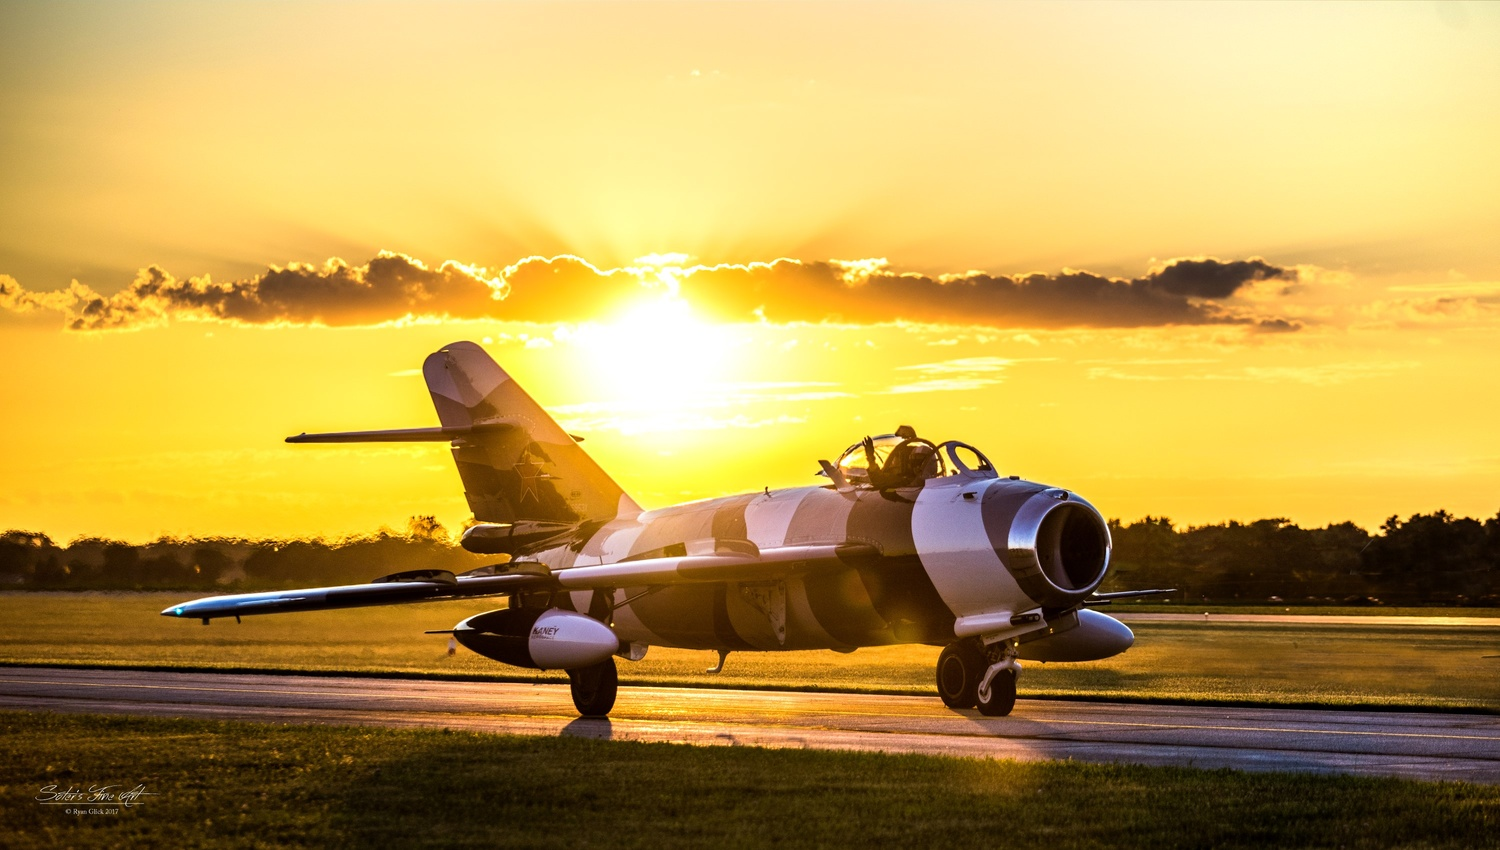 Mig 17 at Sunset by Ryan Glick